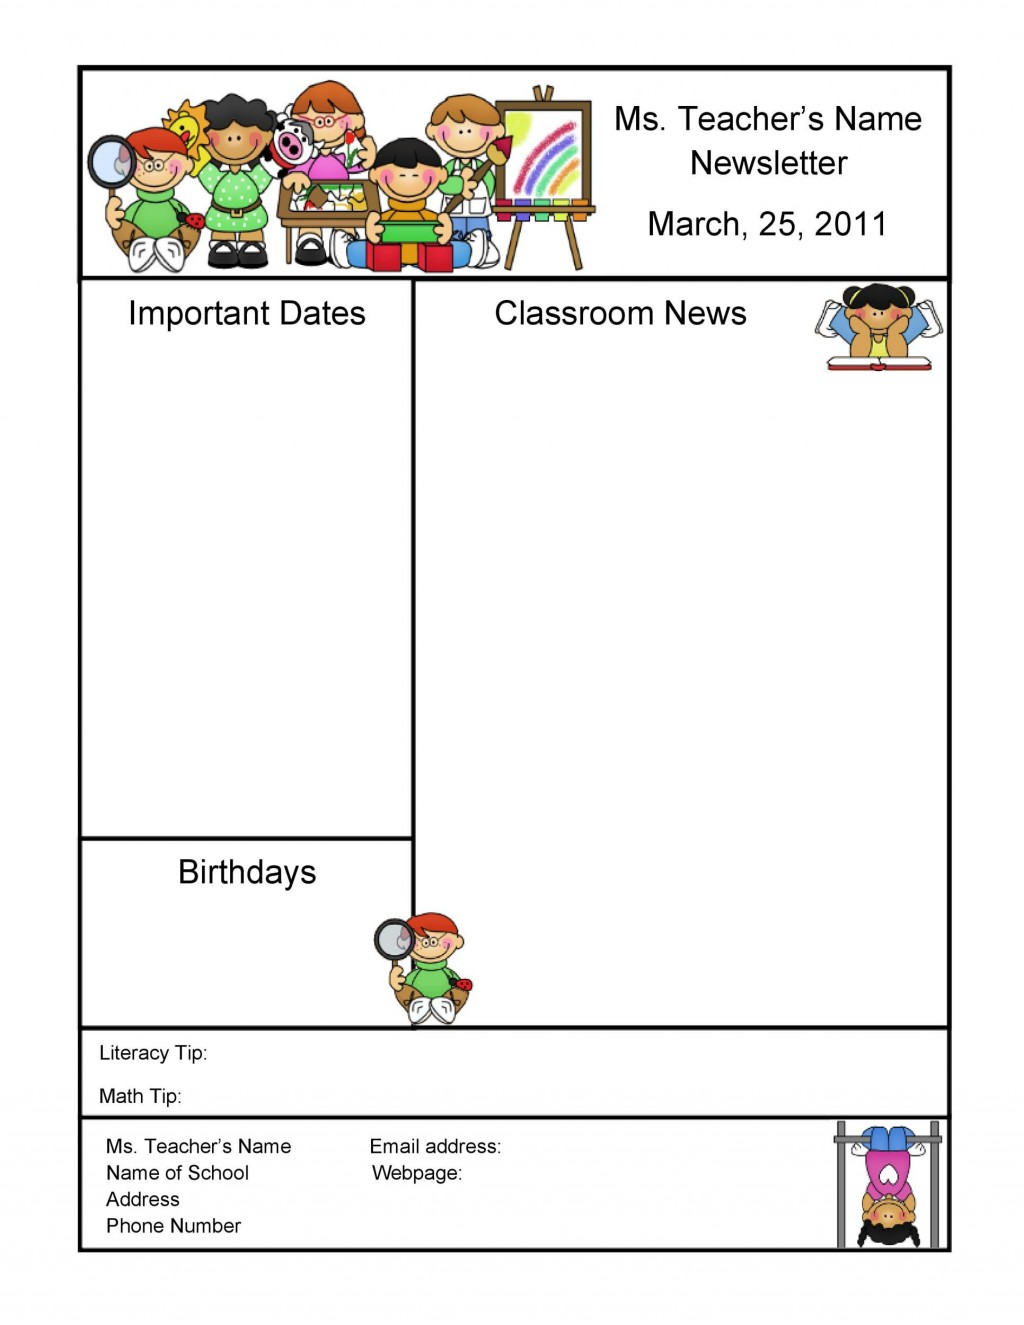 006 Shocking School Newsletter Template Word Concept  Free Classroom For MicrosoftLarge